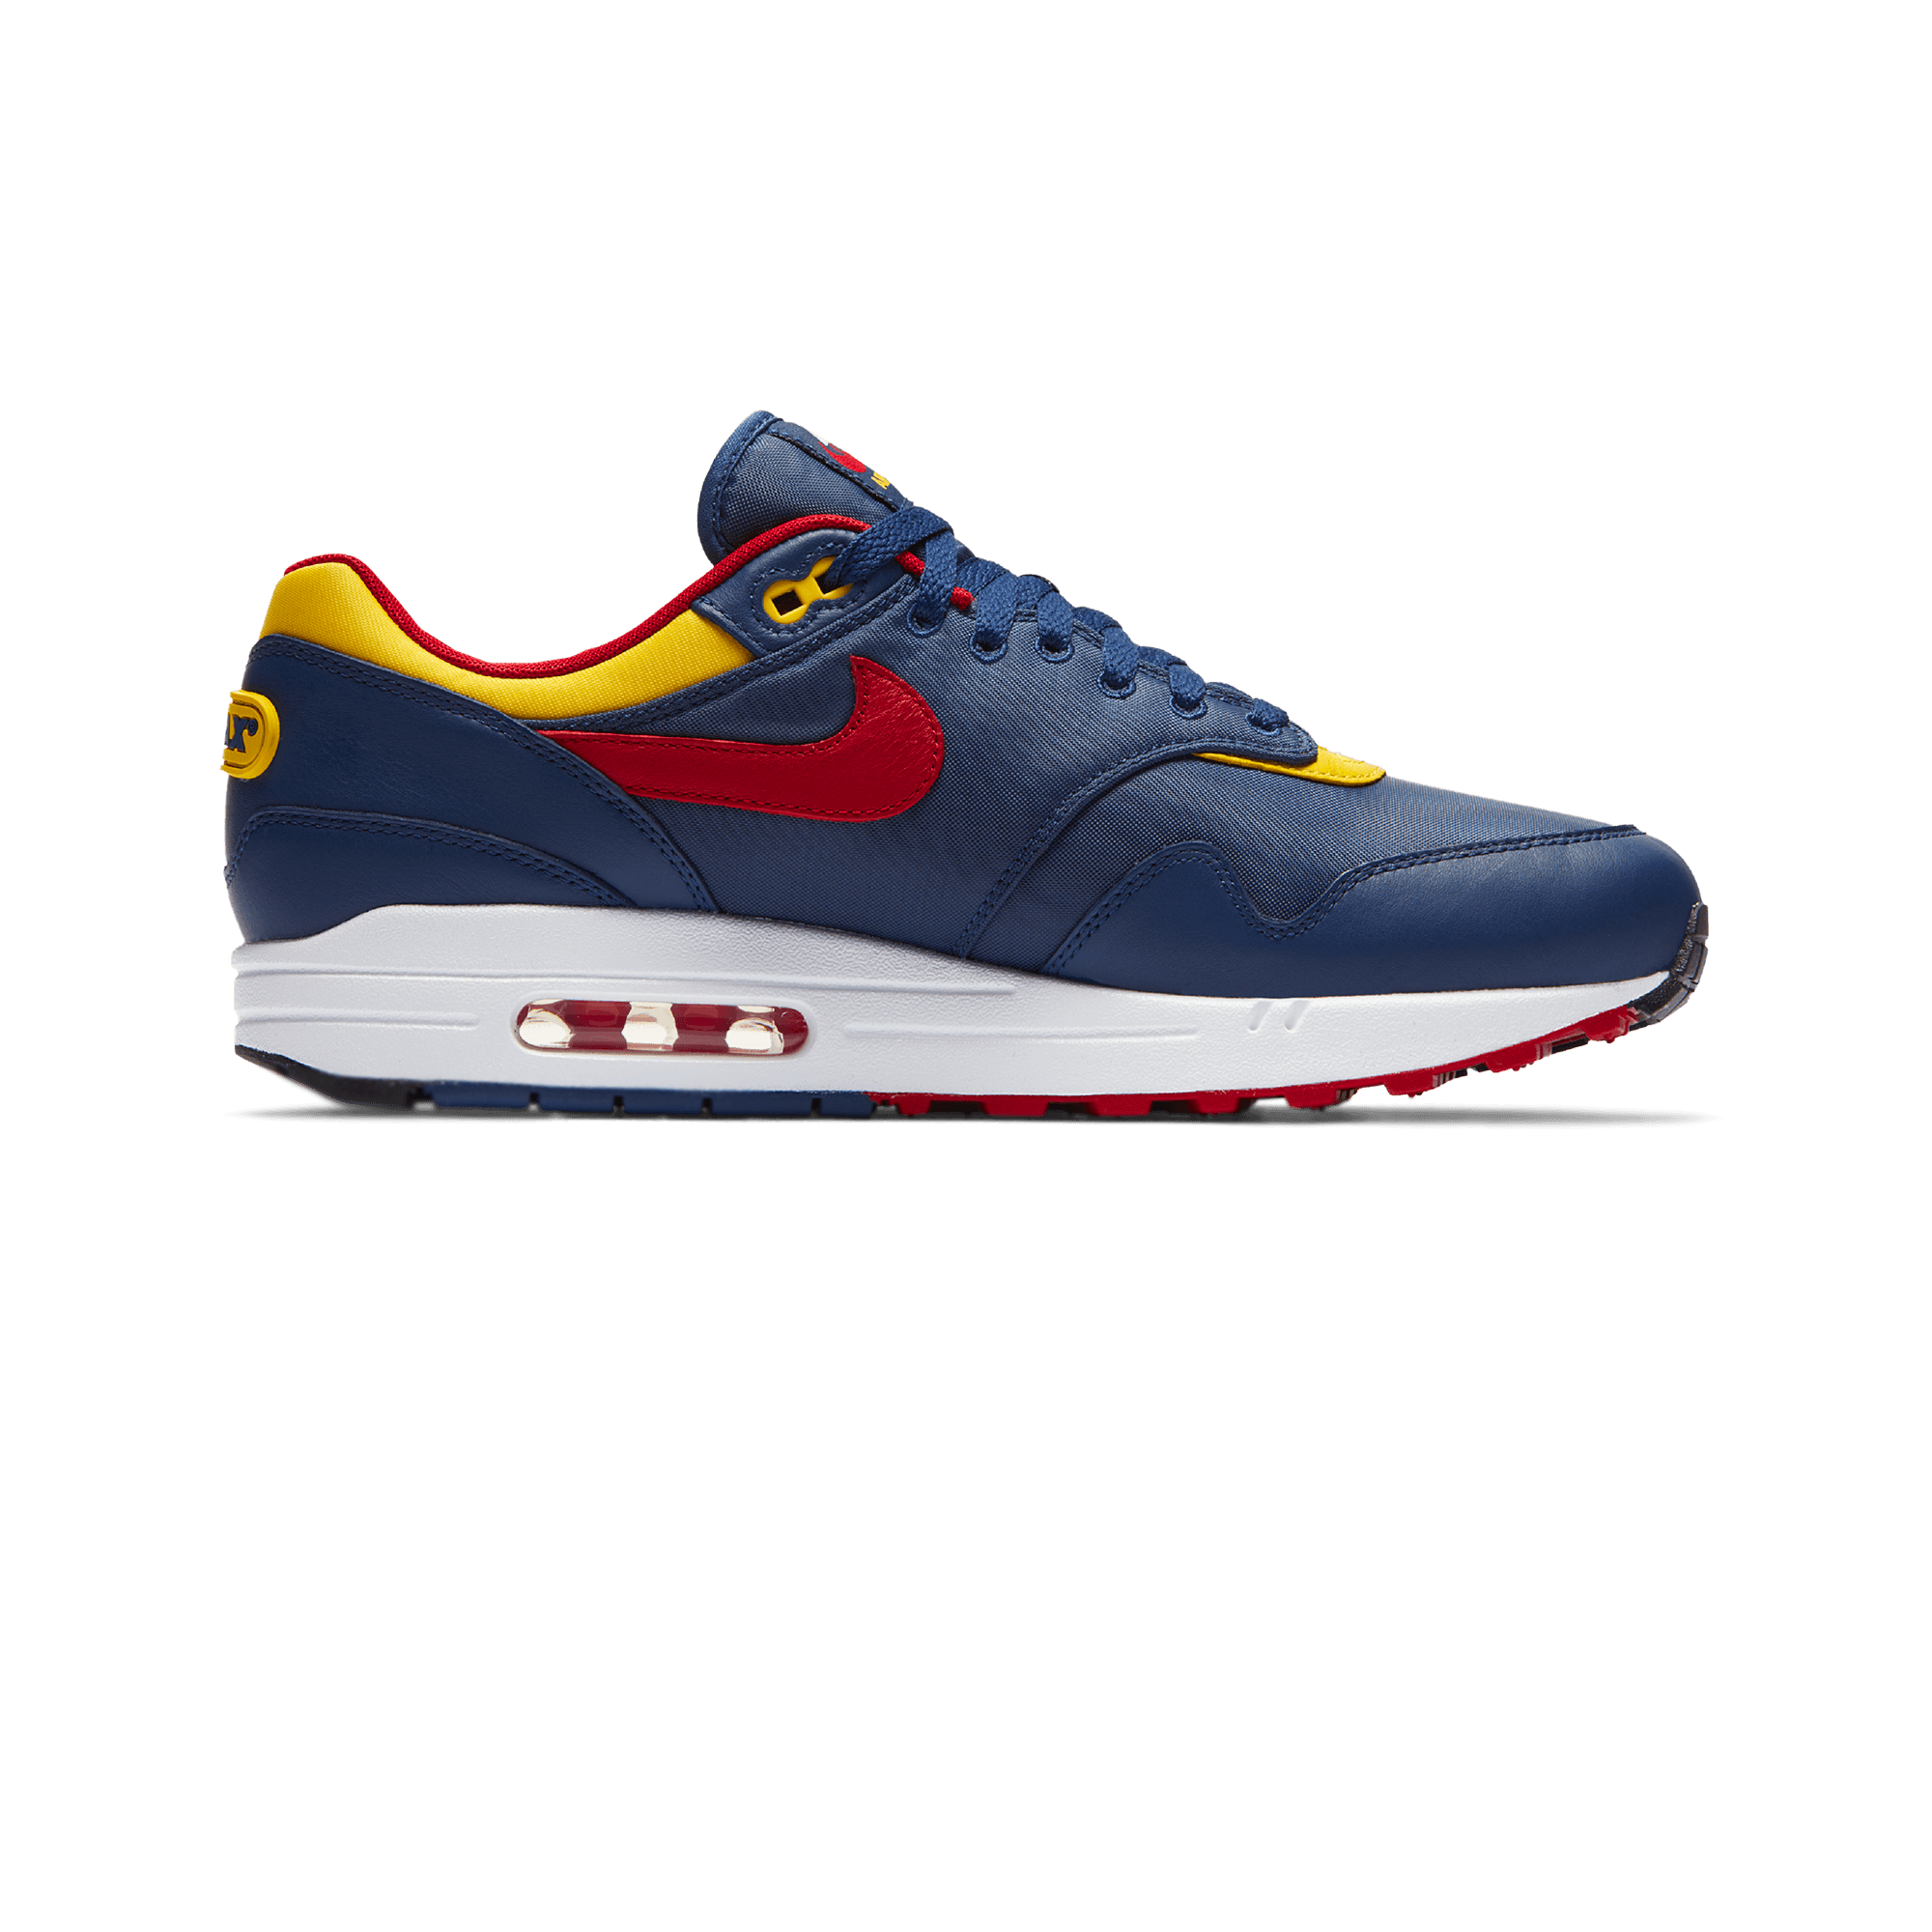 Air Max 1 Premium navy/yellow/gym red